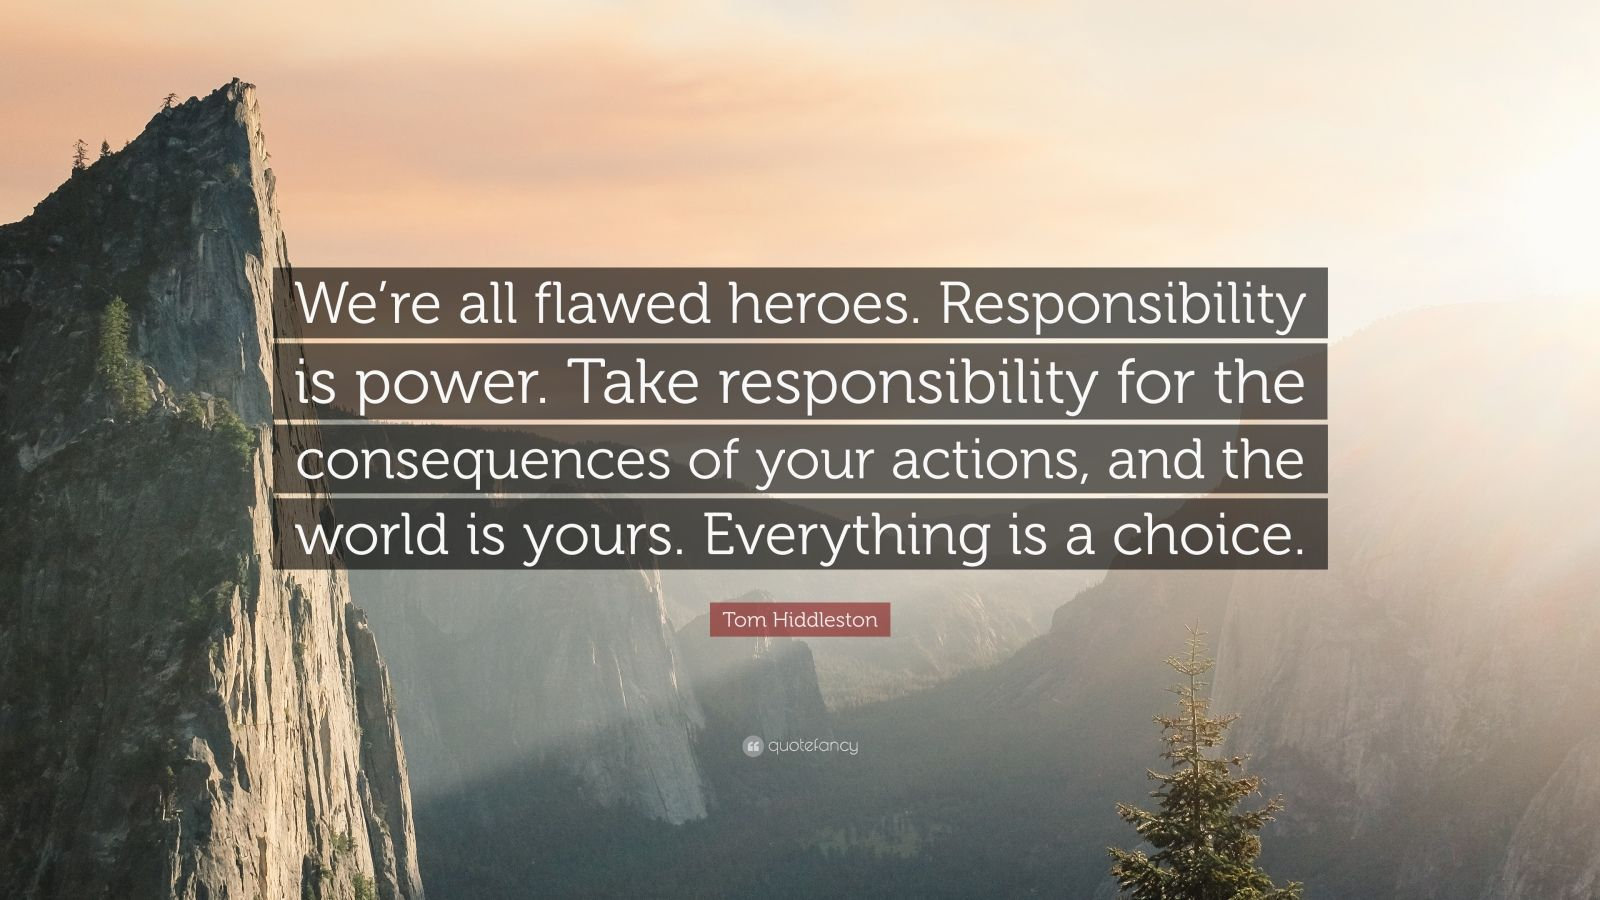 """Tom Hiddleston Quote: """"We're all flawed heroes. Responsibility is power. Take responsibility for the consequences of your actions, and the world is yours. Everything is a choice."""""""